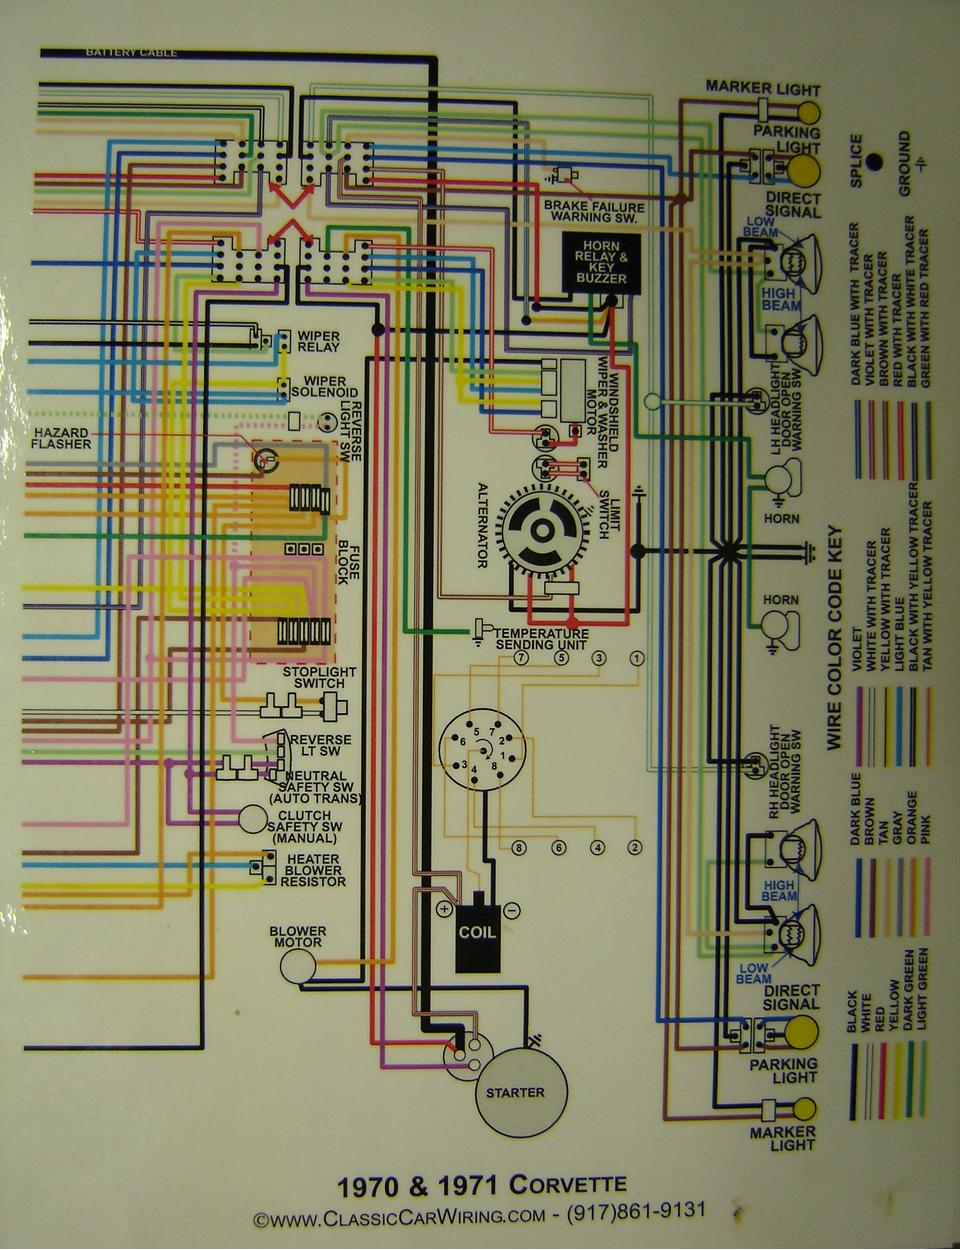 71 Corvette Wiring Diagram - 2.sg-dbd.de • on 1970 corvette alternator, 1978 corvette engine diagram, 1970 corvette air cleaner, 1970 corvette transmission, 1977 corvette engine diagram, 1970 corvette clock, 1970 corvette radiator, 1970 corvette suspension, 1970 corvette oil filter, 1970 corvette distributor, 1970 corvette brochure, 1970 corvette exhaust, 1987 corvette engine diagram, 1970 corvette headlights, 1980 corvette engine diagram, 1970 corvette speedometer, 1986 corvette engine diagram, 1975 corvette diagram, 1970 corvette starter, 1970 corvette carburetor,